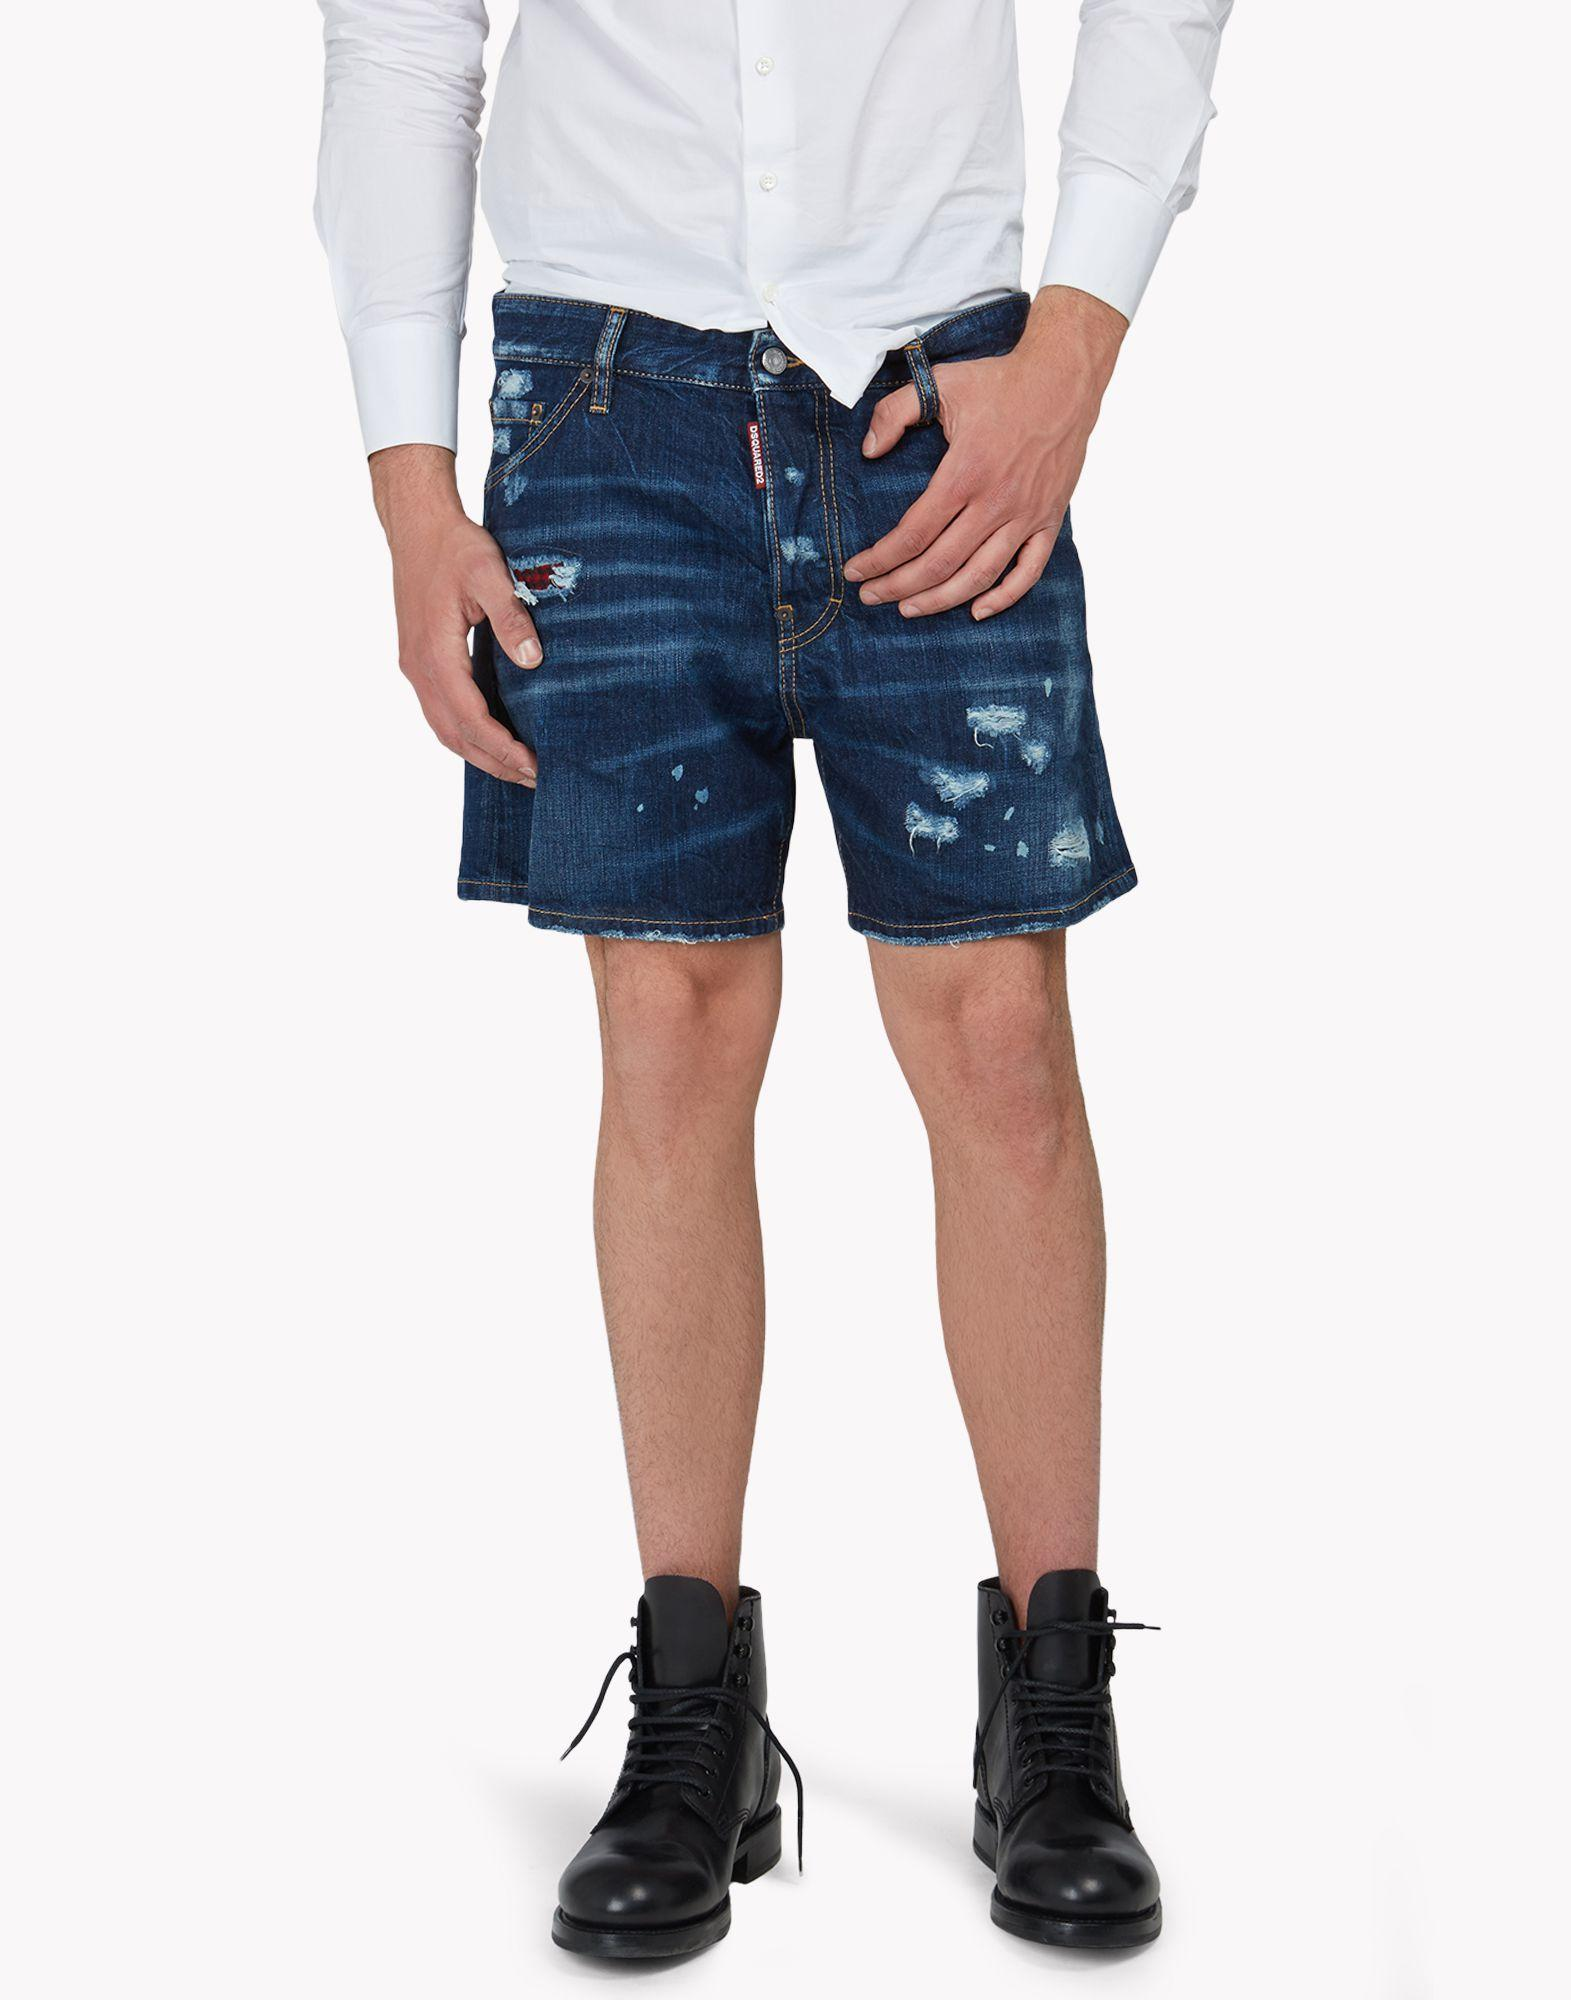 Shop for mens long denim shorts online at Target. Free shipping on purchases over $35 and save 5% every day with your Target REDcard.